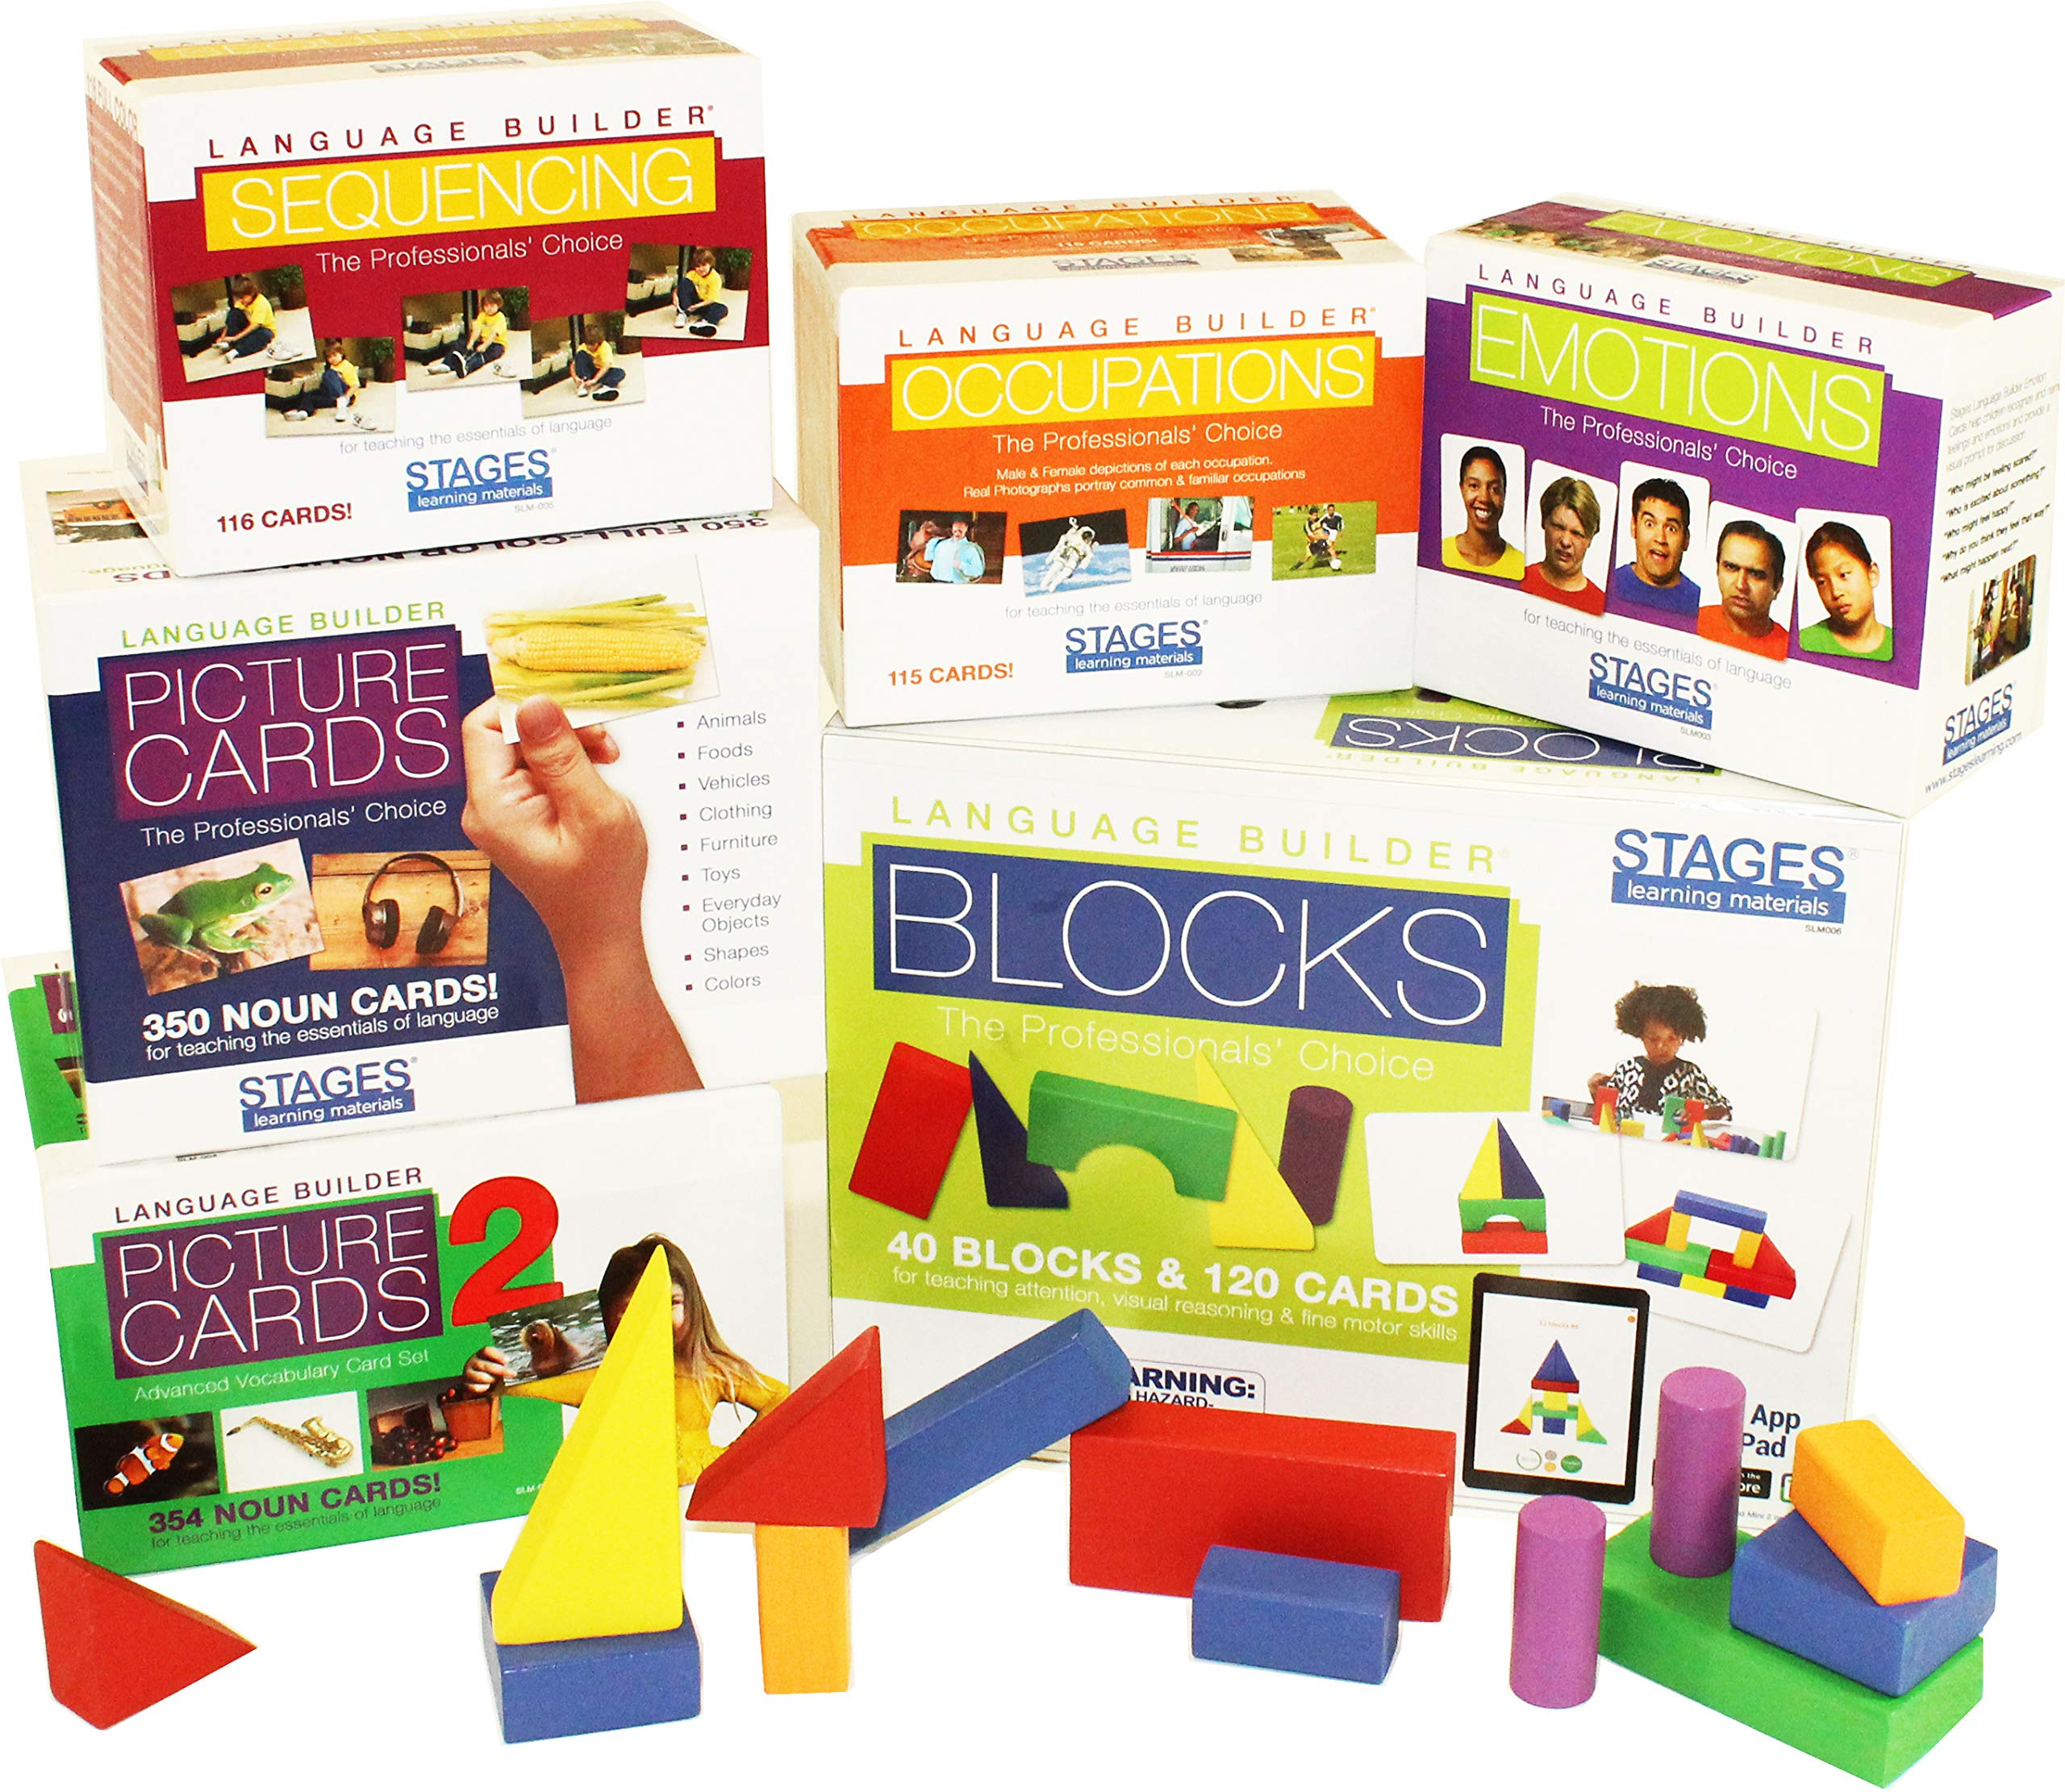 Stages Learning Materials Language Builder Picture Noun Flash Cards Photo Vocabulary Autism Learning Products, ABA Therapy 6 Boxes, 980 Cards, Blocks by Stages Learning